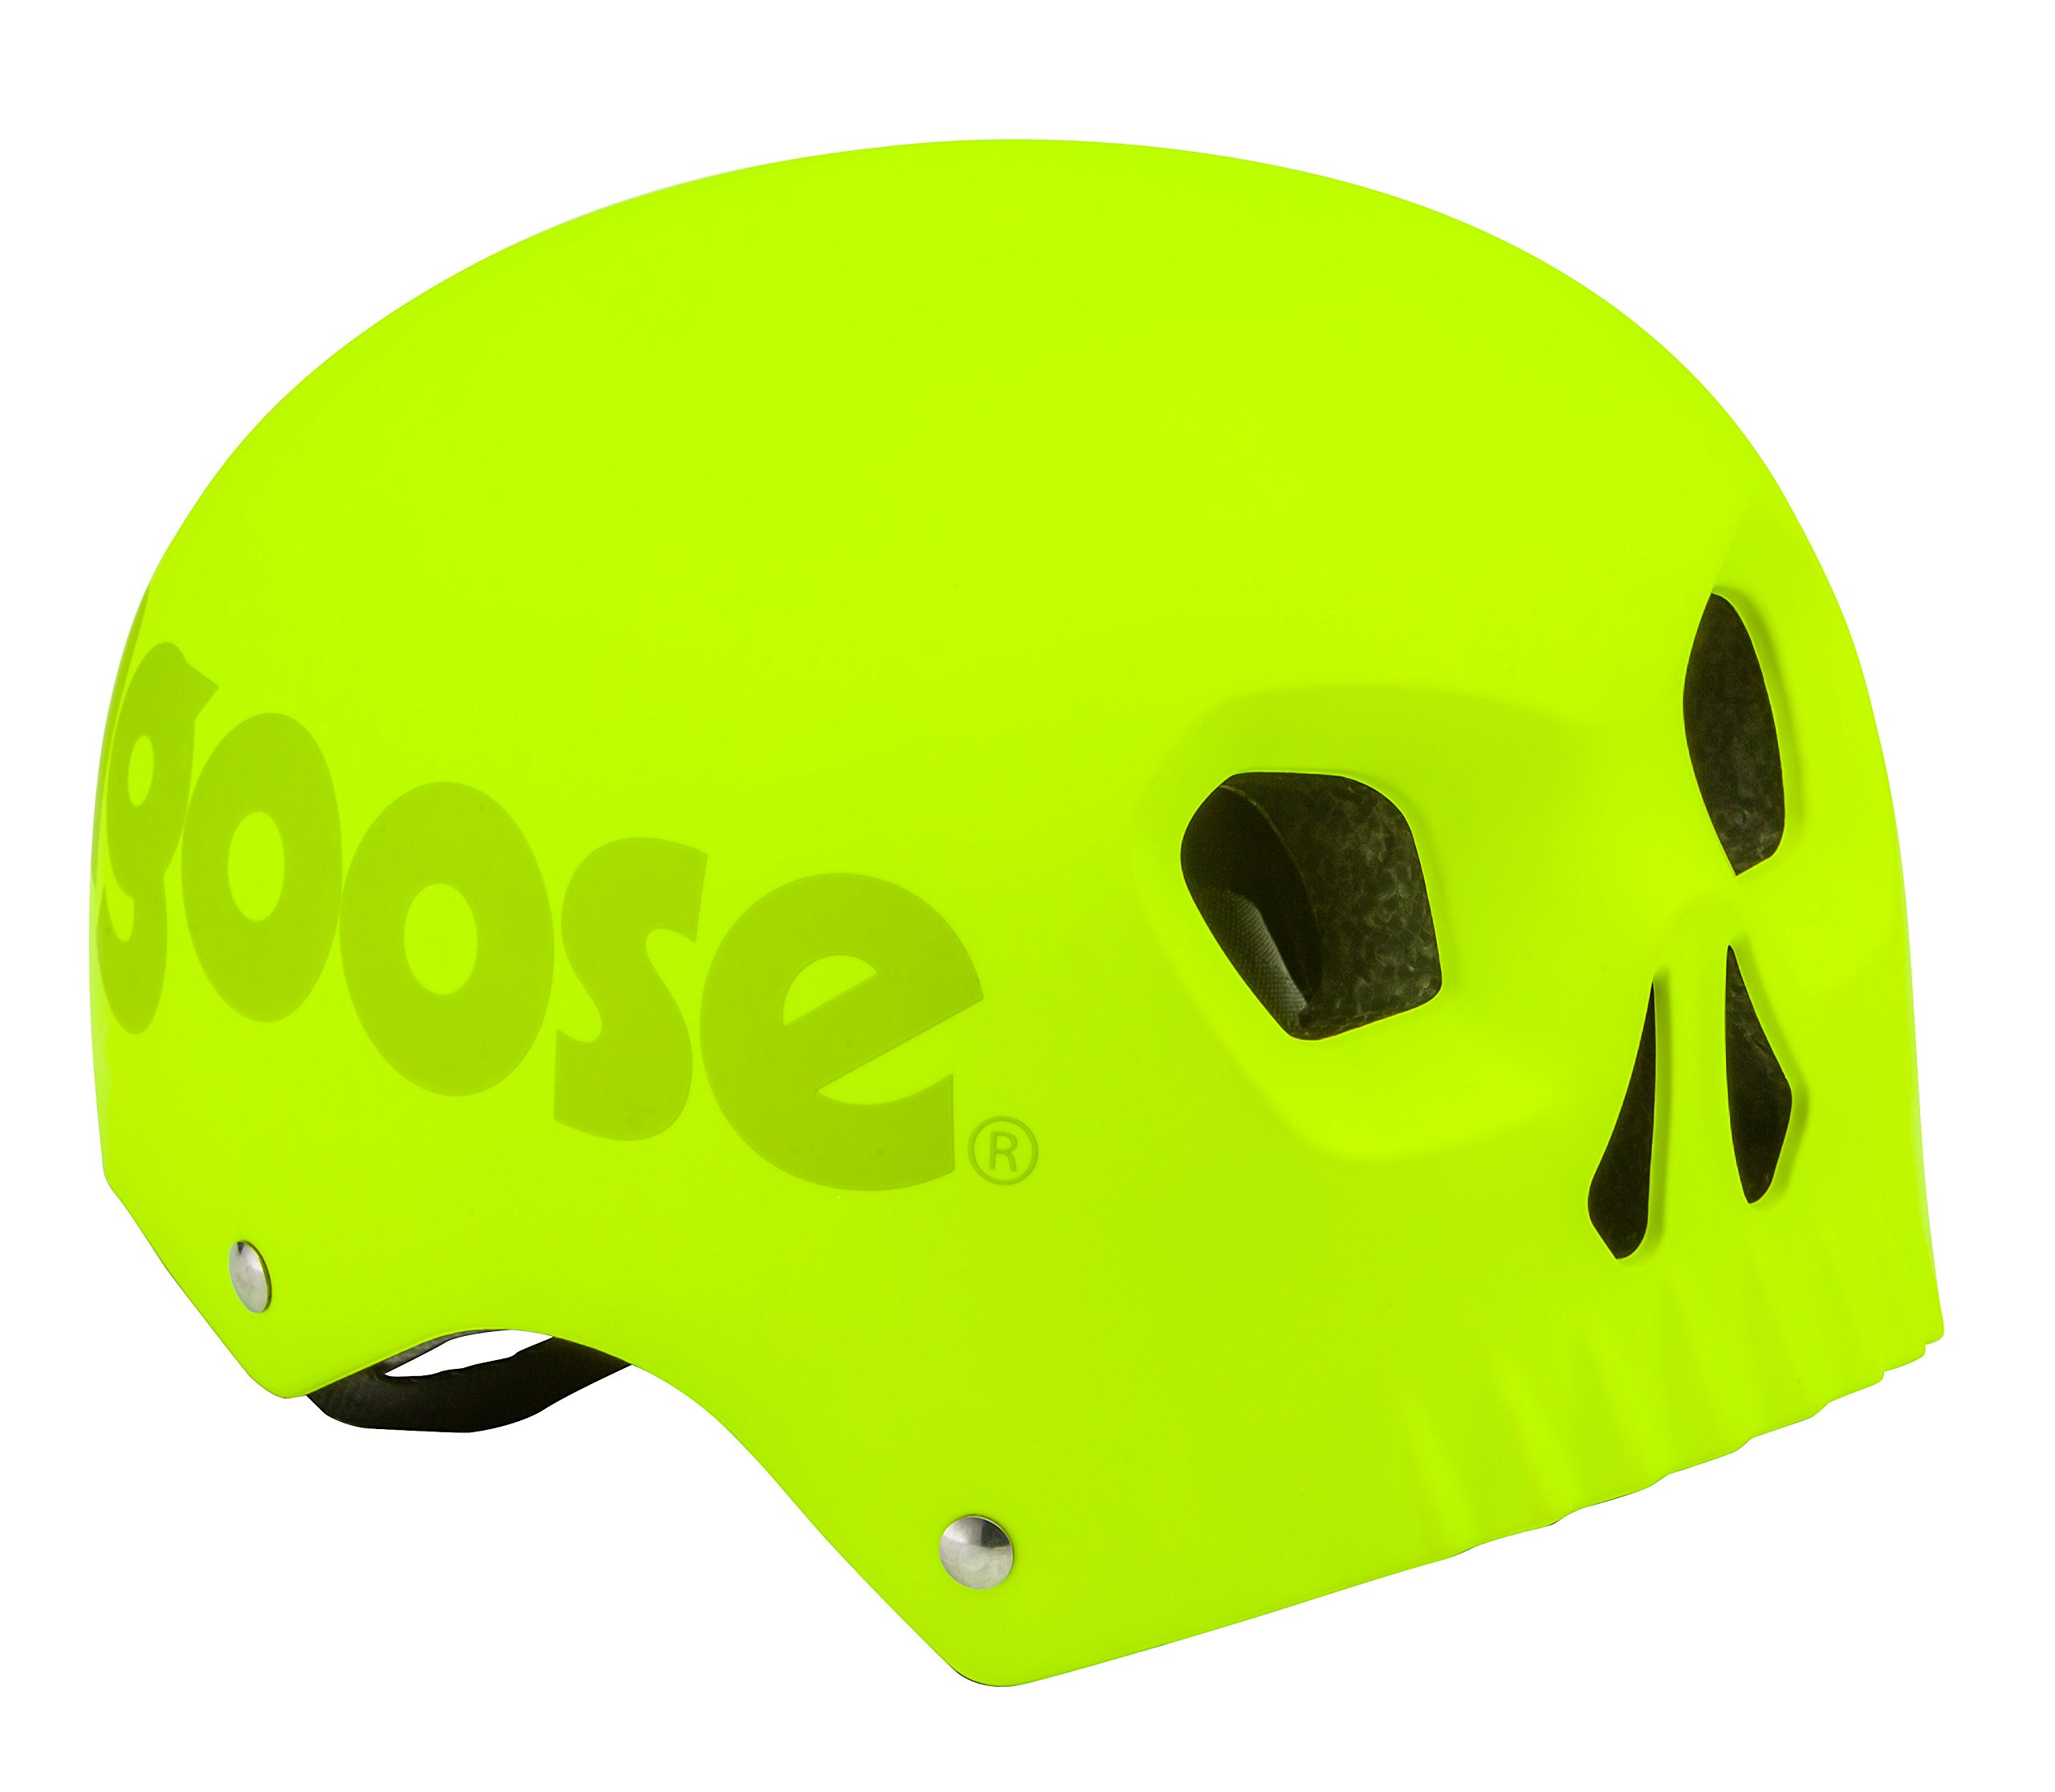 Mongoose MG78332-2 Street Youth Skull Hardshell, Neon Yellow by Mongoose